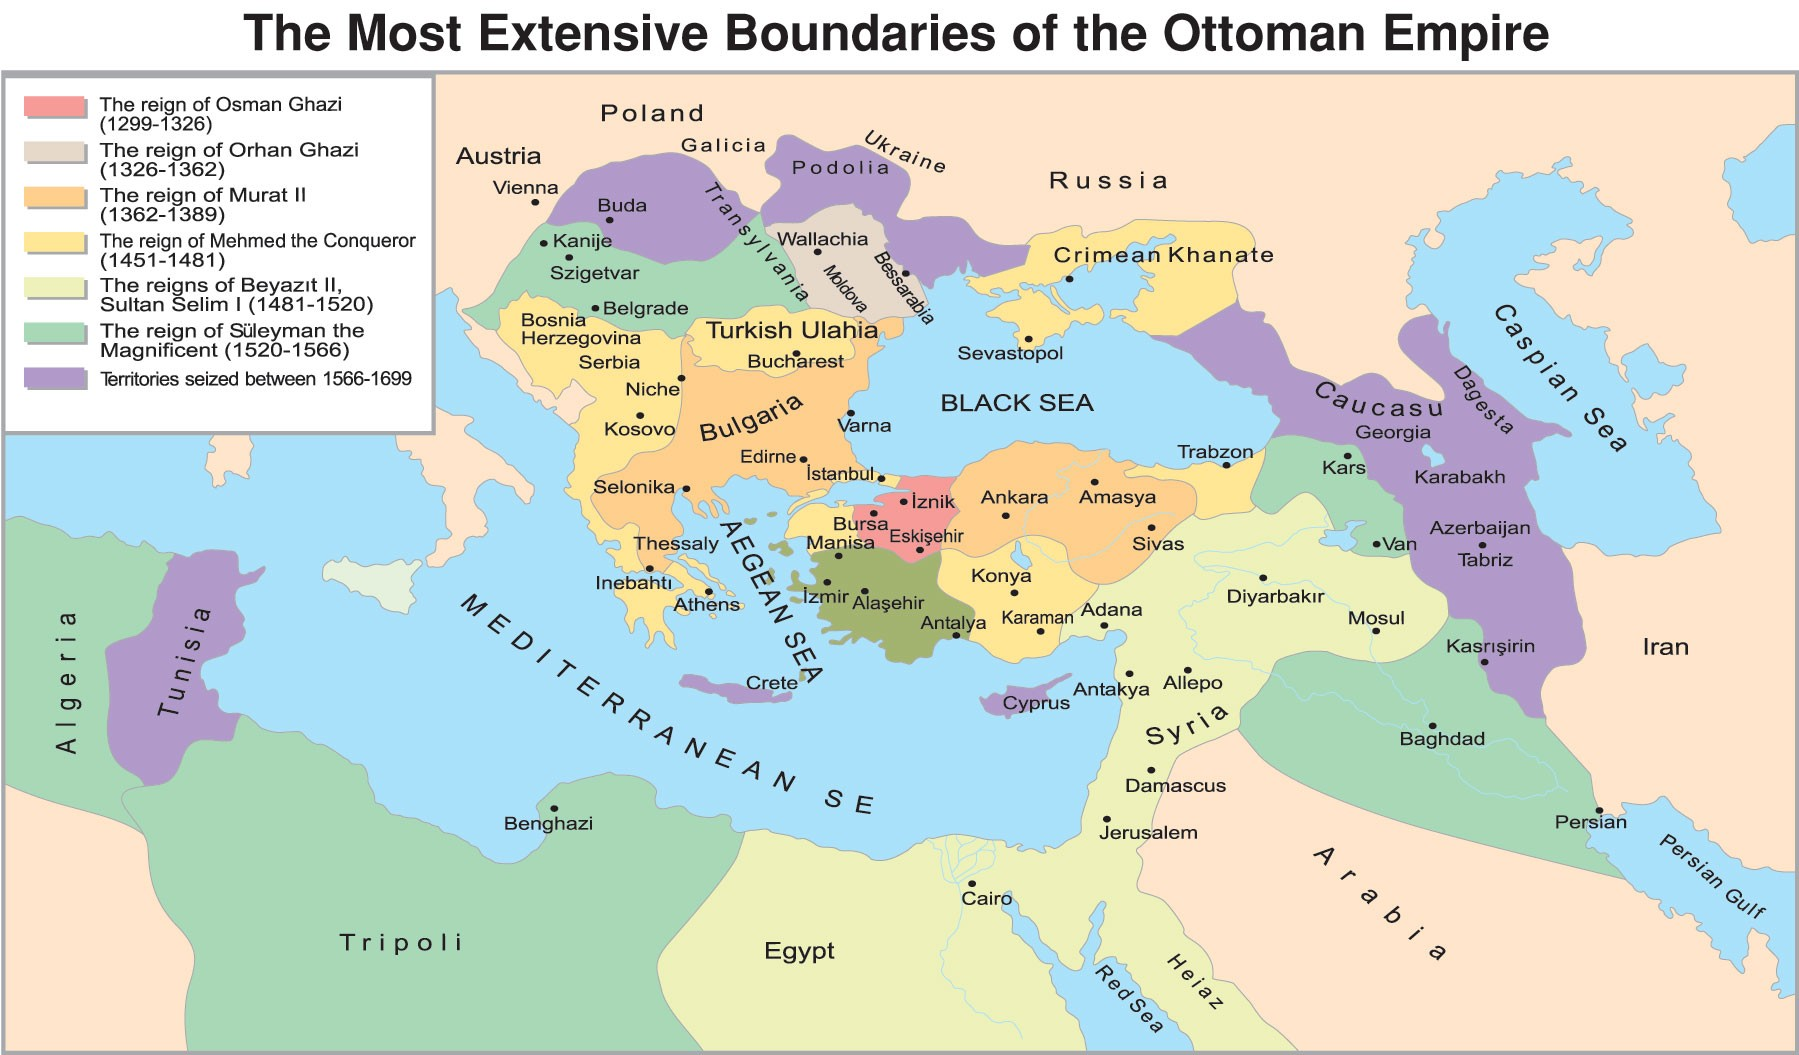 much success in the ottoman empire owed to kanuni sultan sleymans rule